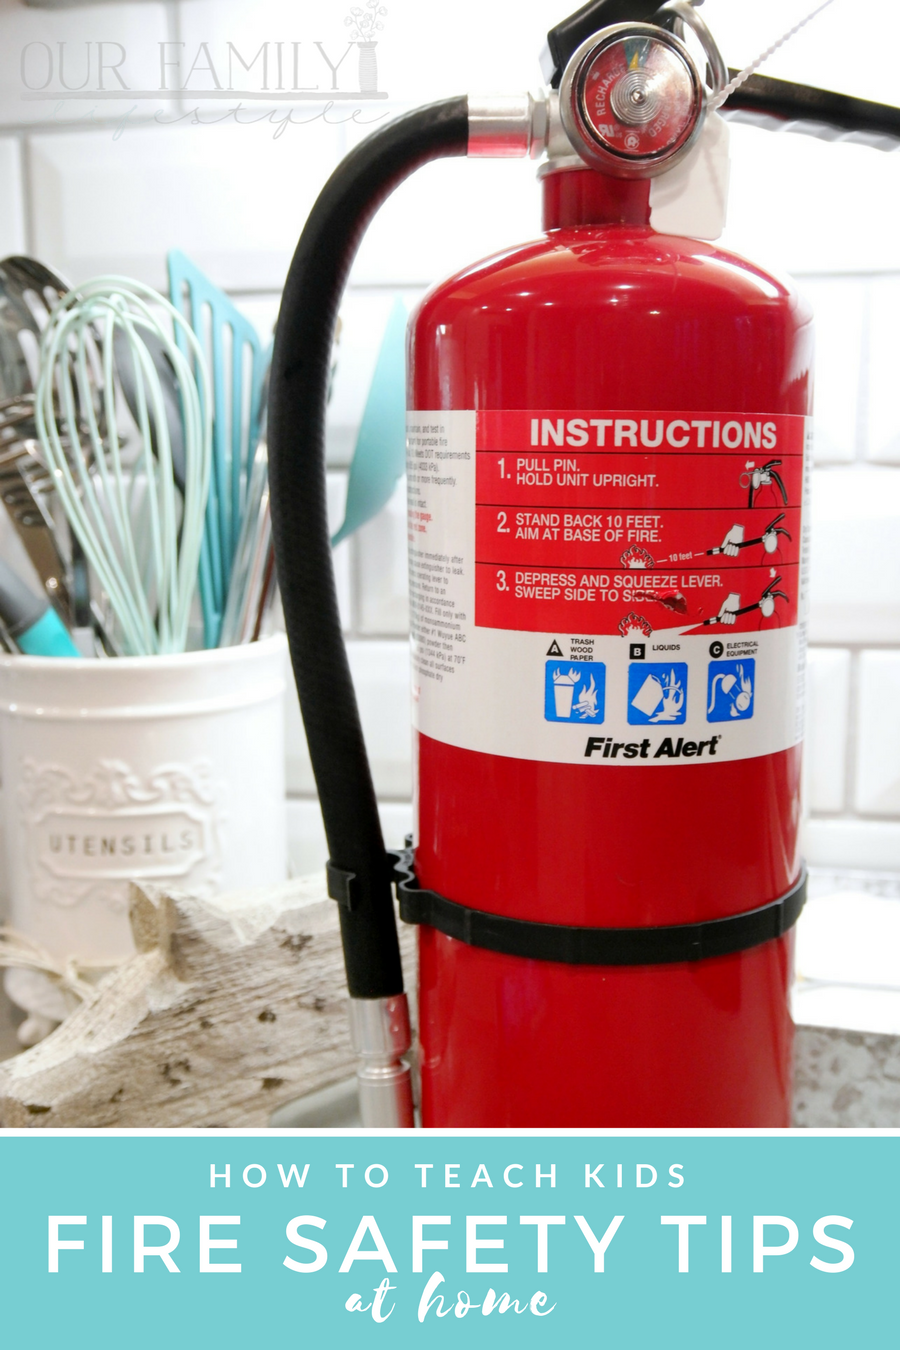 How to Teach Kids Fire Safety Tips at Home